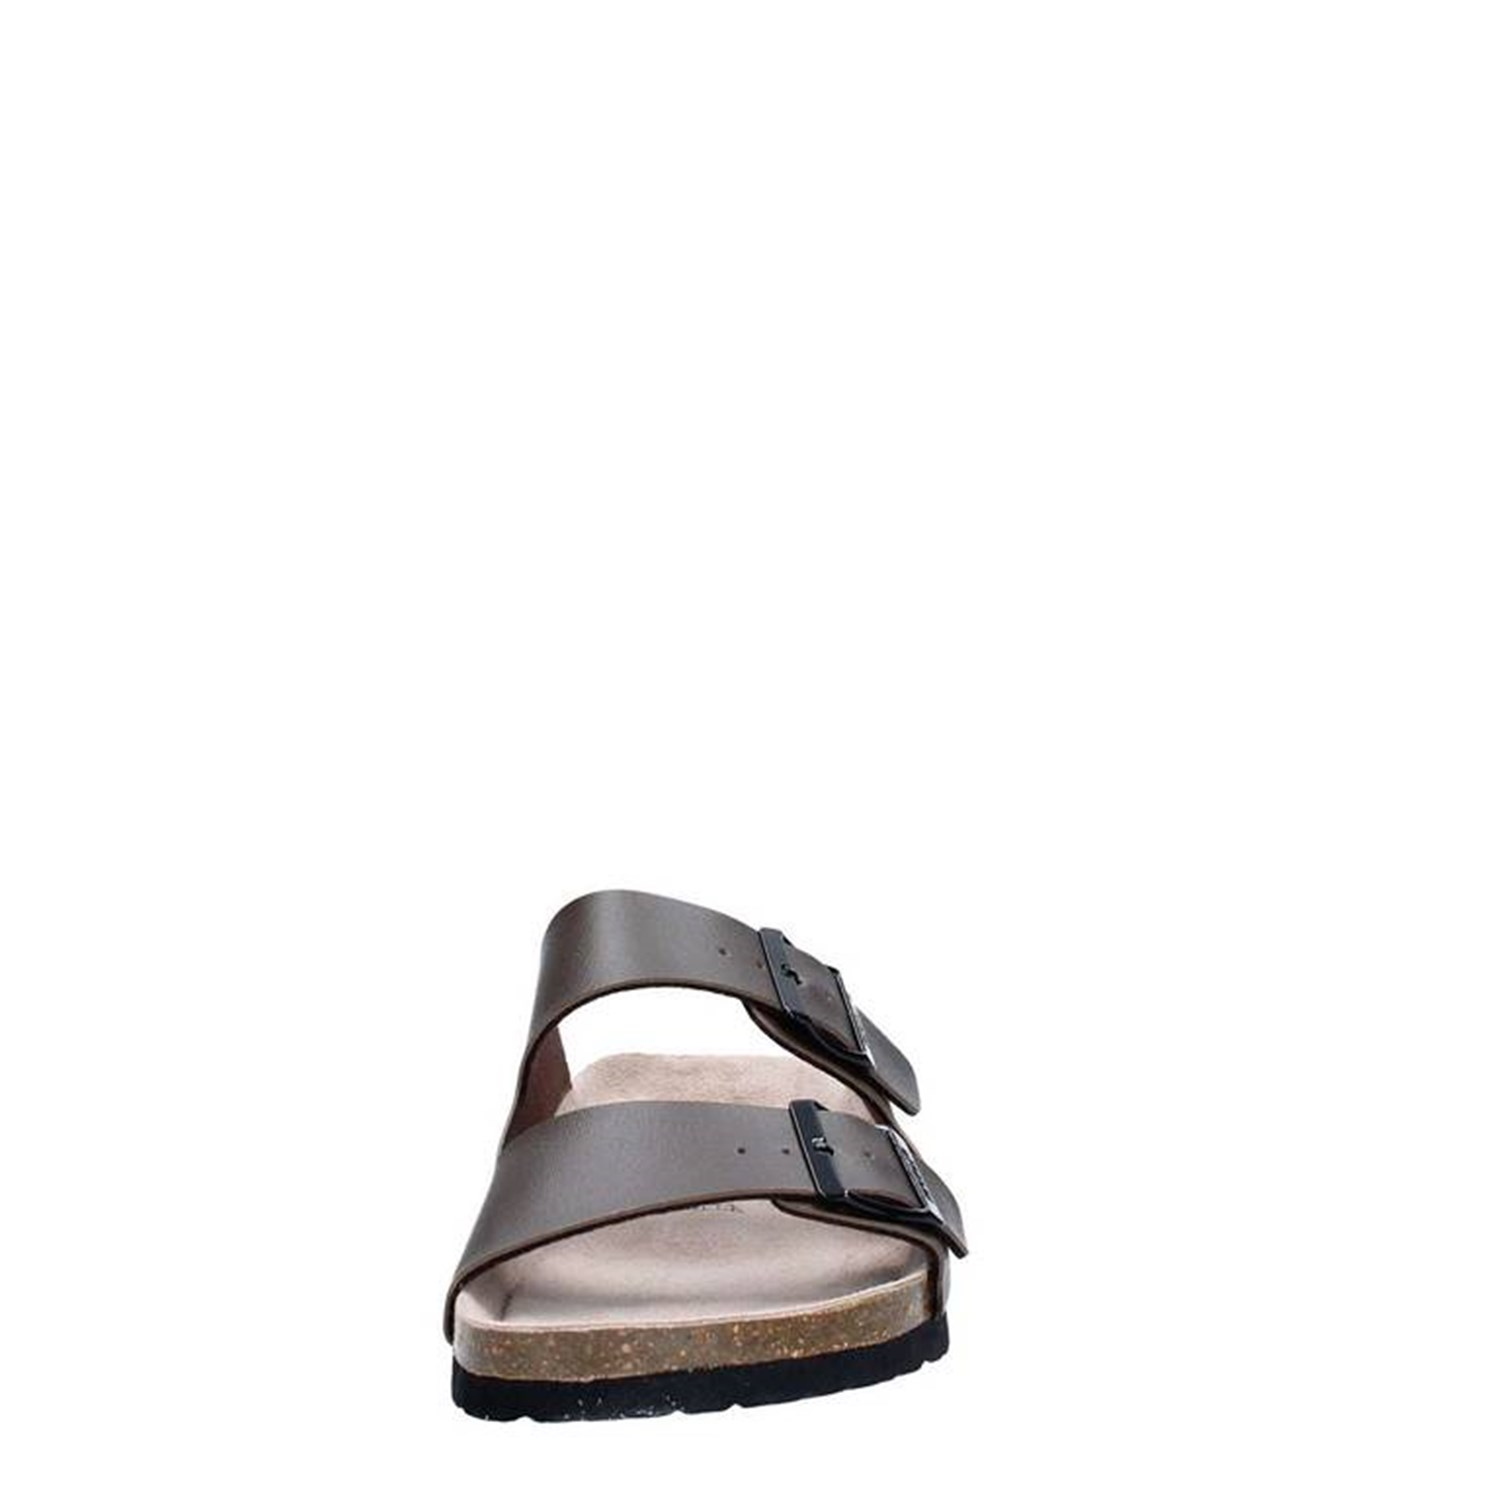 Superga Shoes Man Sandals BROWN S11C371